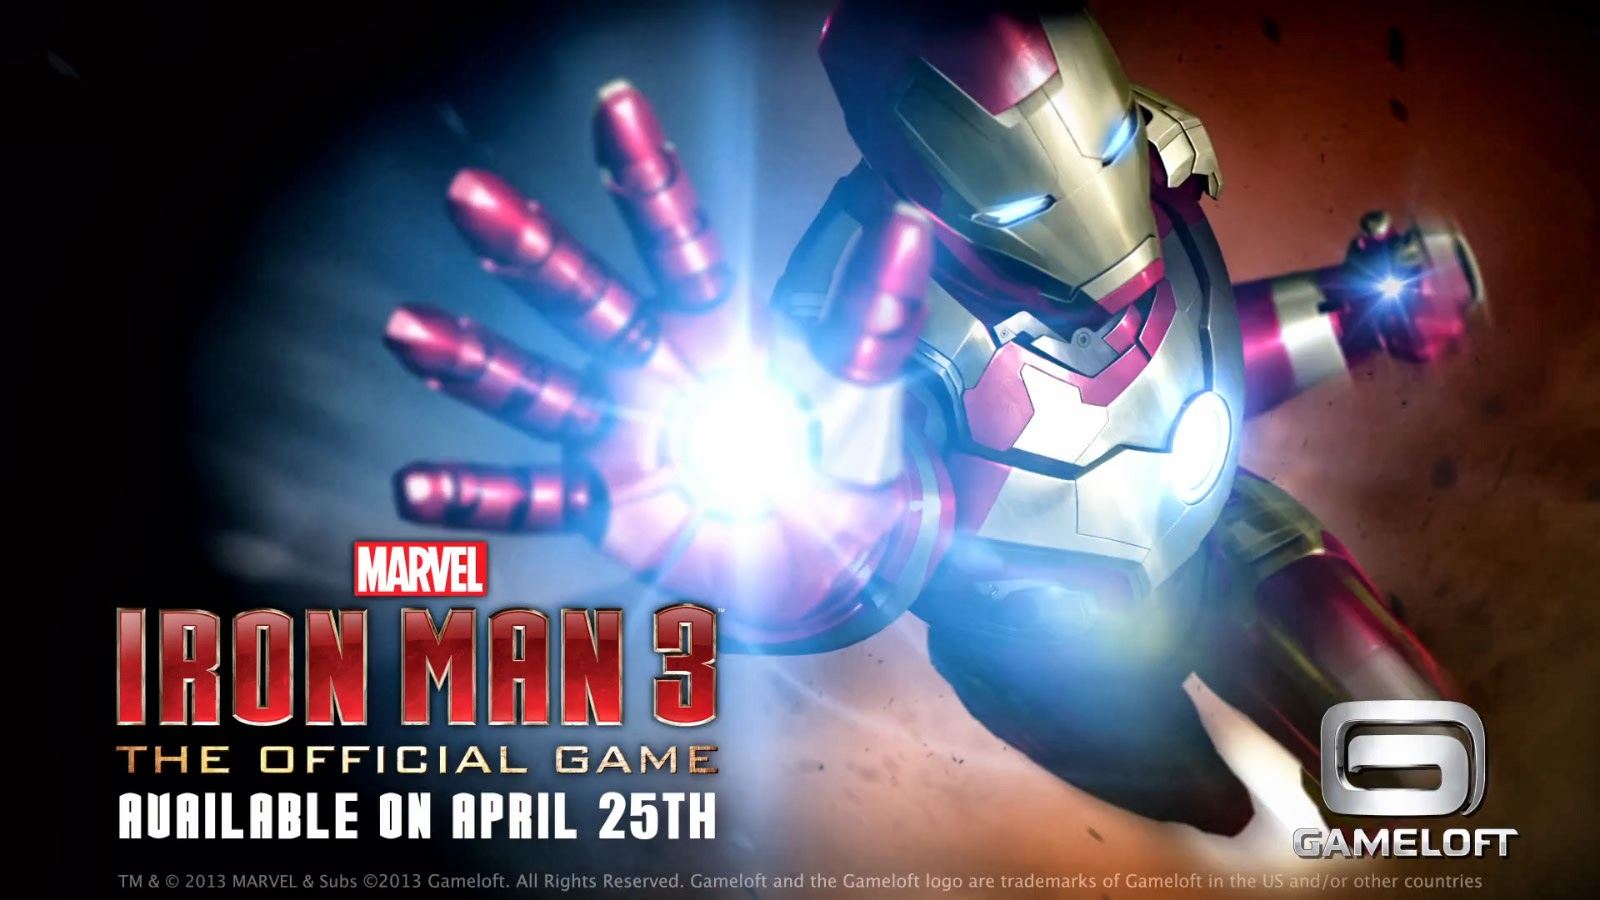 Iron Man 3 1.6.9g for Android - Download